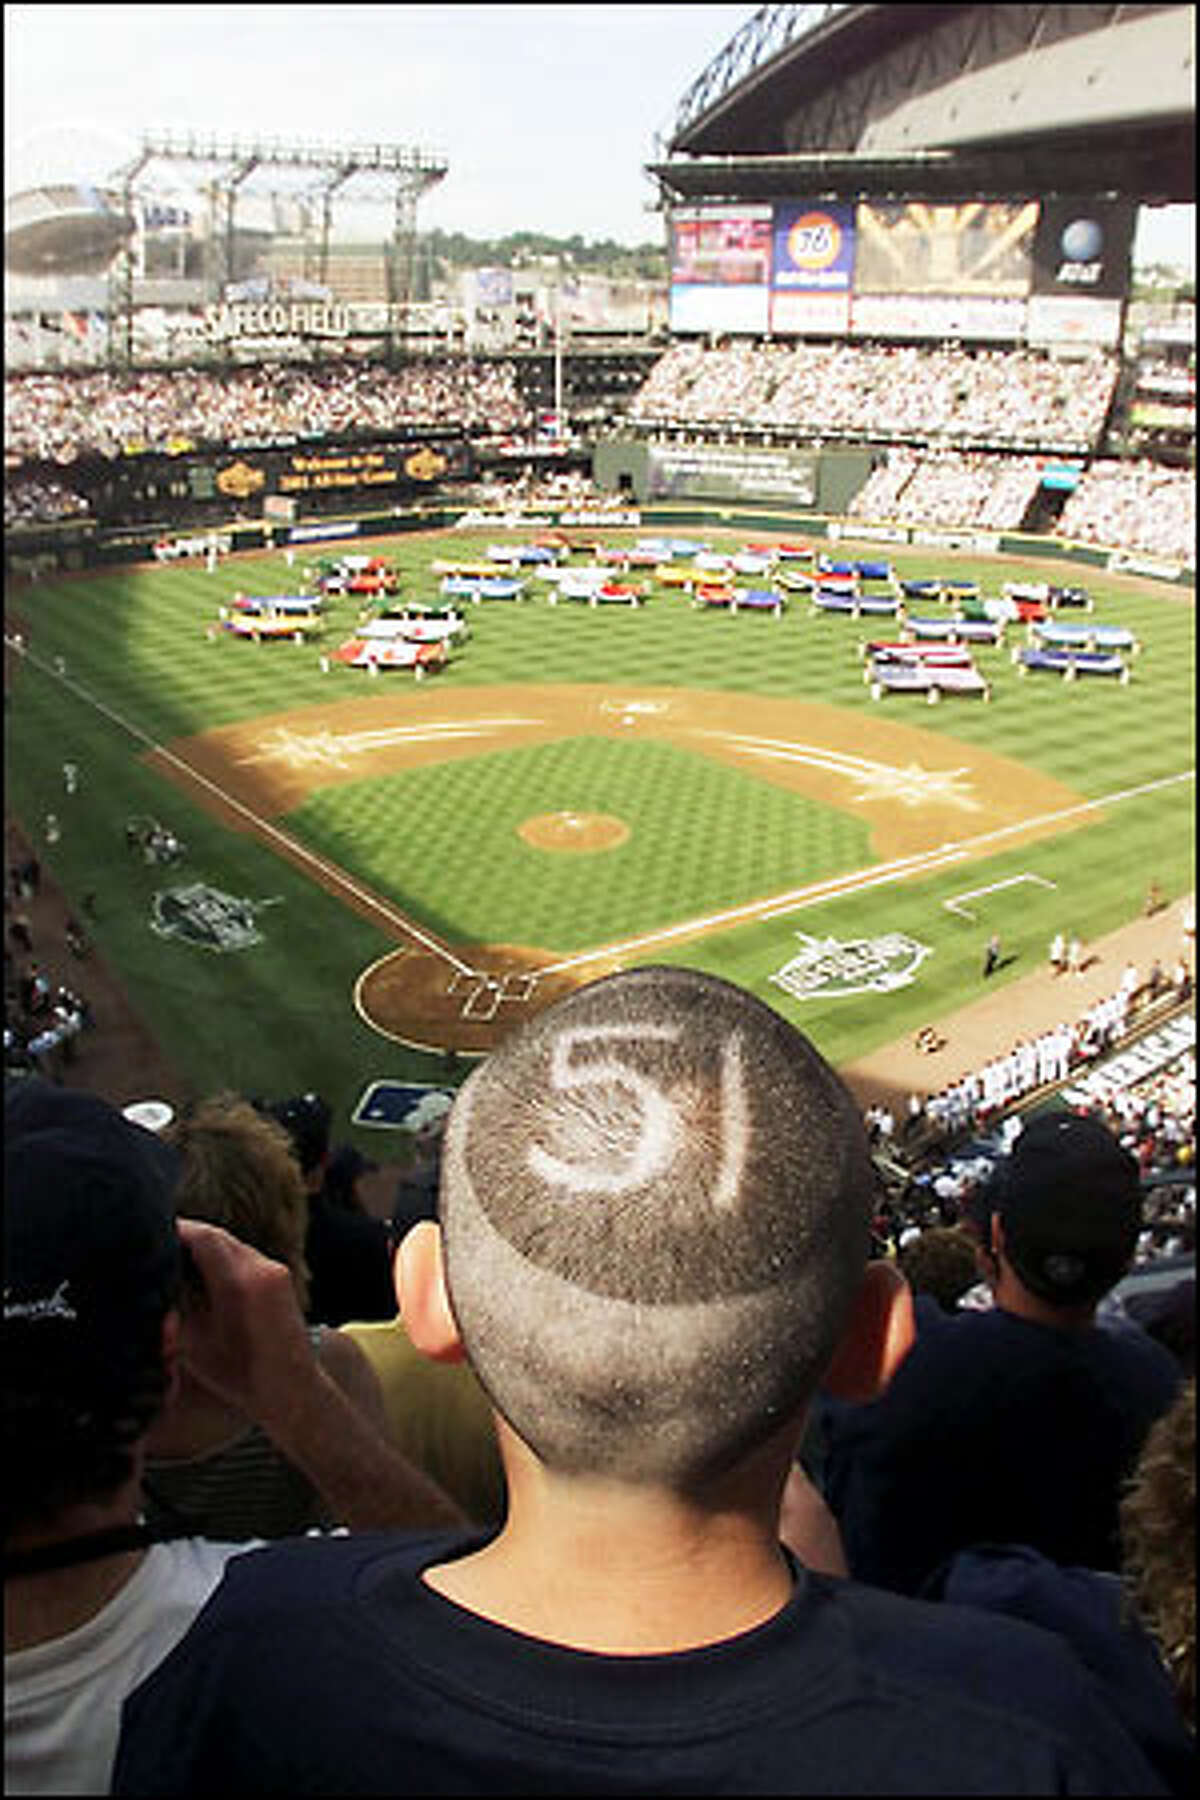 With Ichiro Suzuki's number shaved into his head, Matthew Bonime, 12, of Seattle, watches the opening ceremonies of the All-Star Game. He is sitting on the 300 level directly behind home plate.